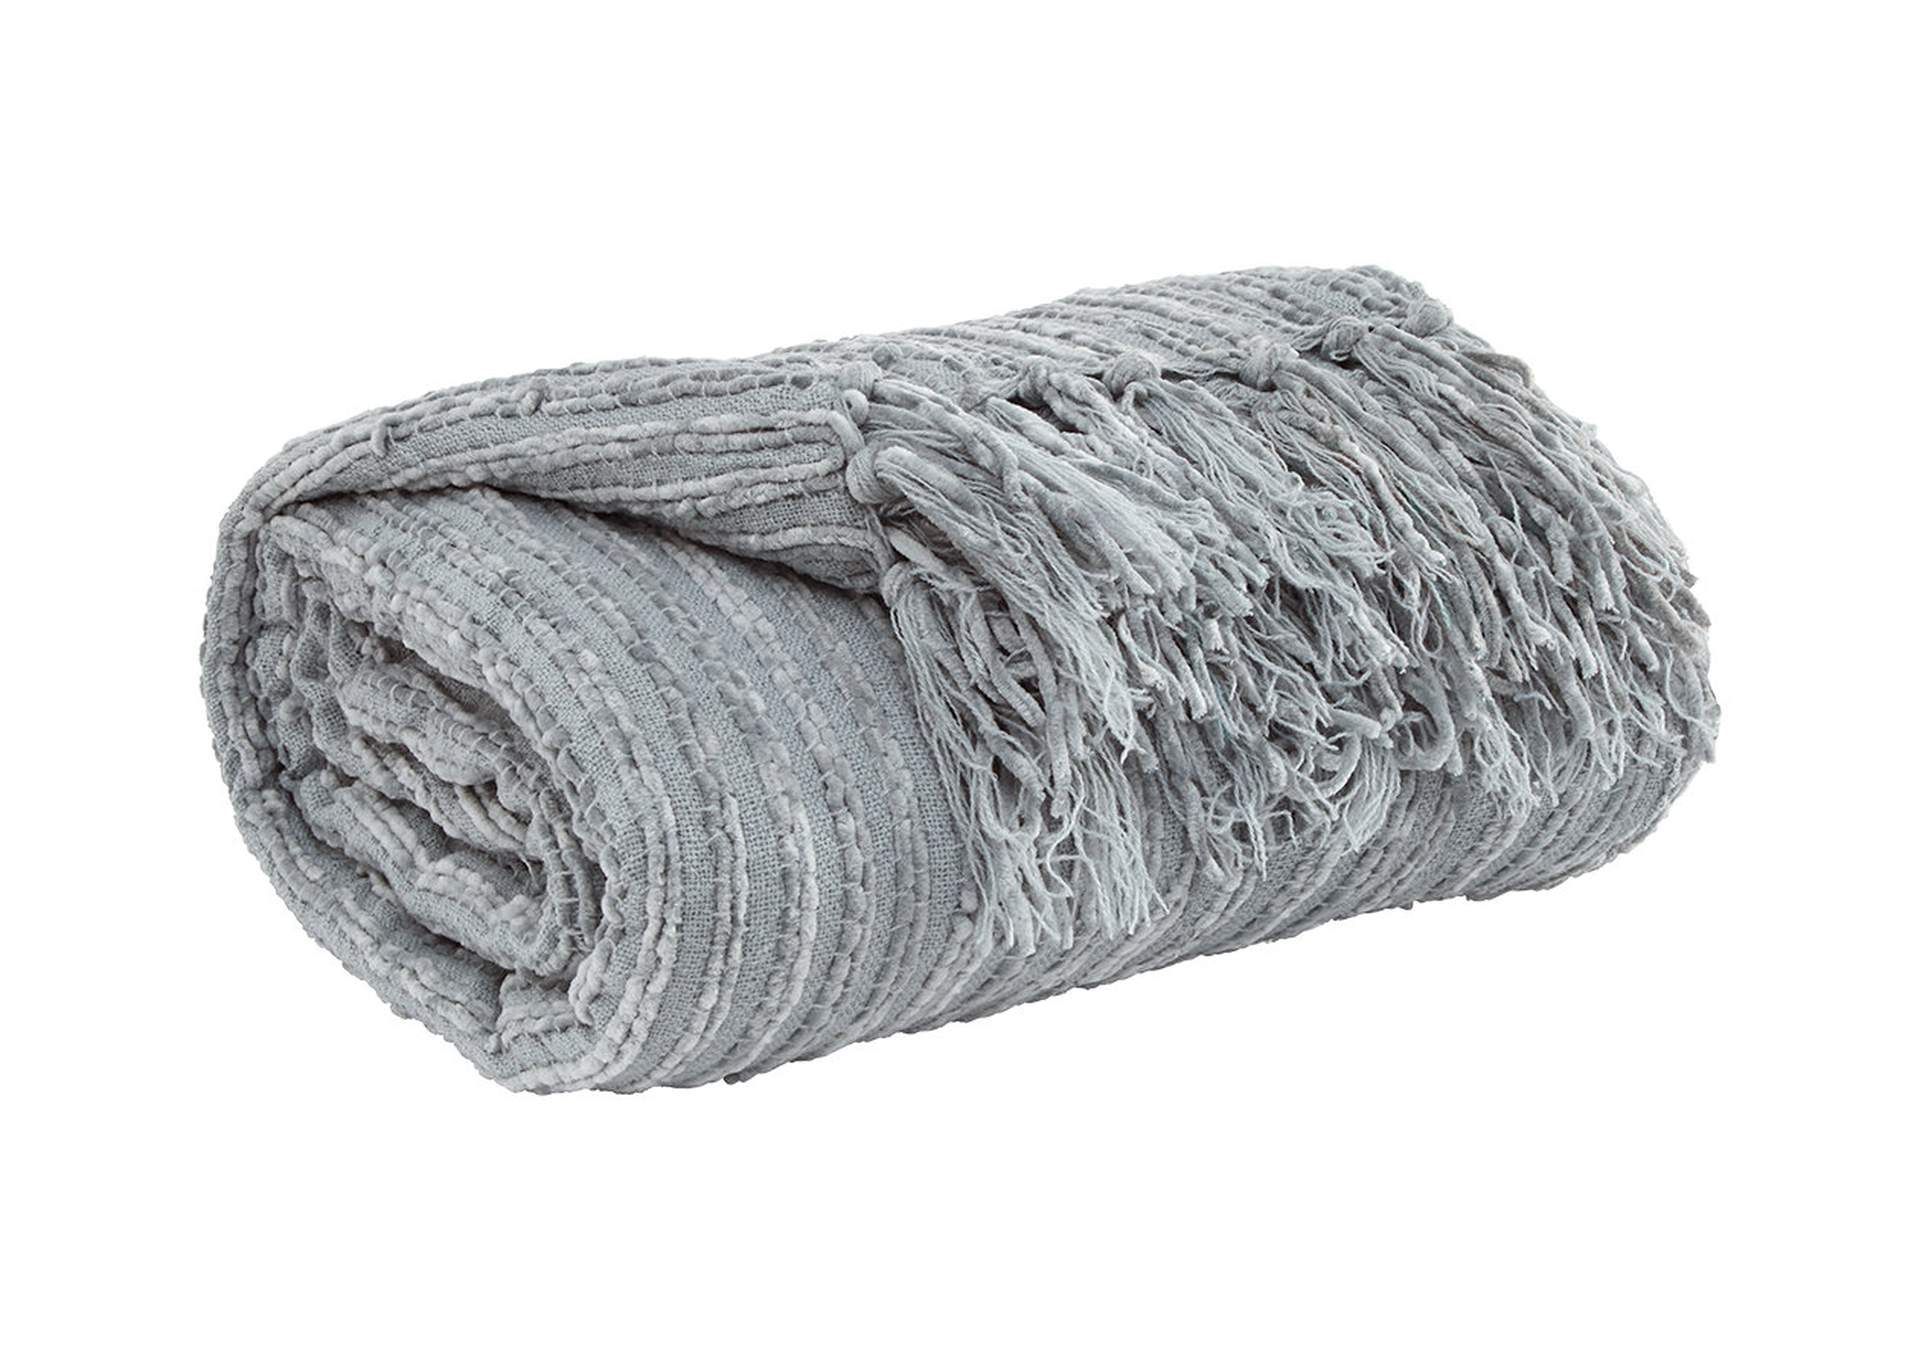 Noland Sage Throw,Direct To Consumer Express